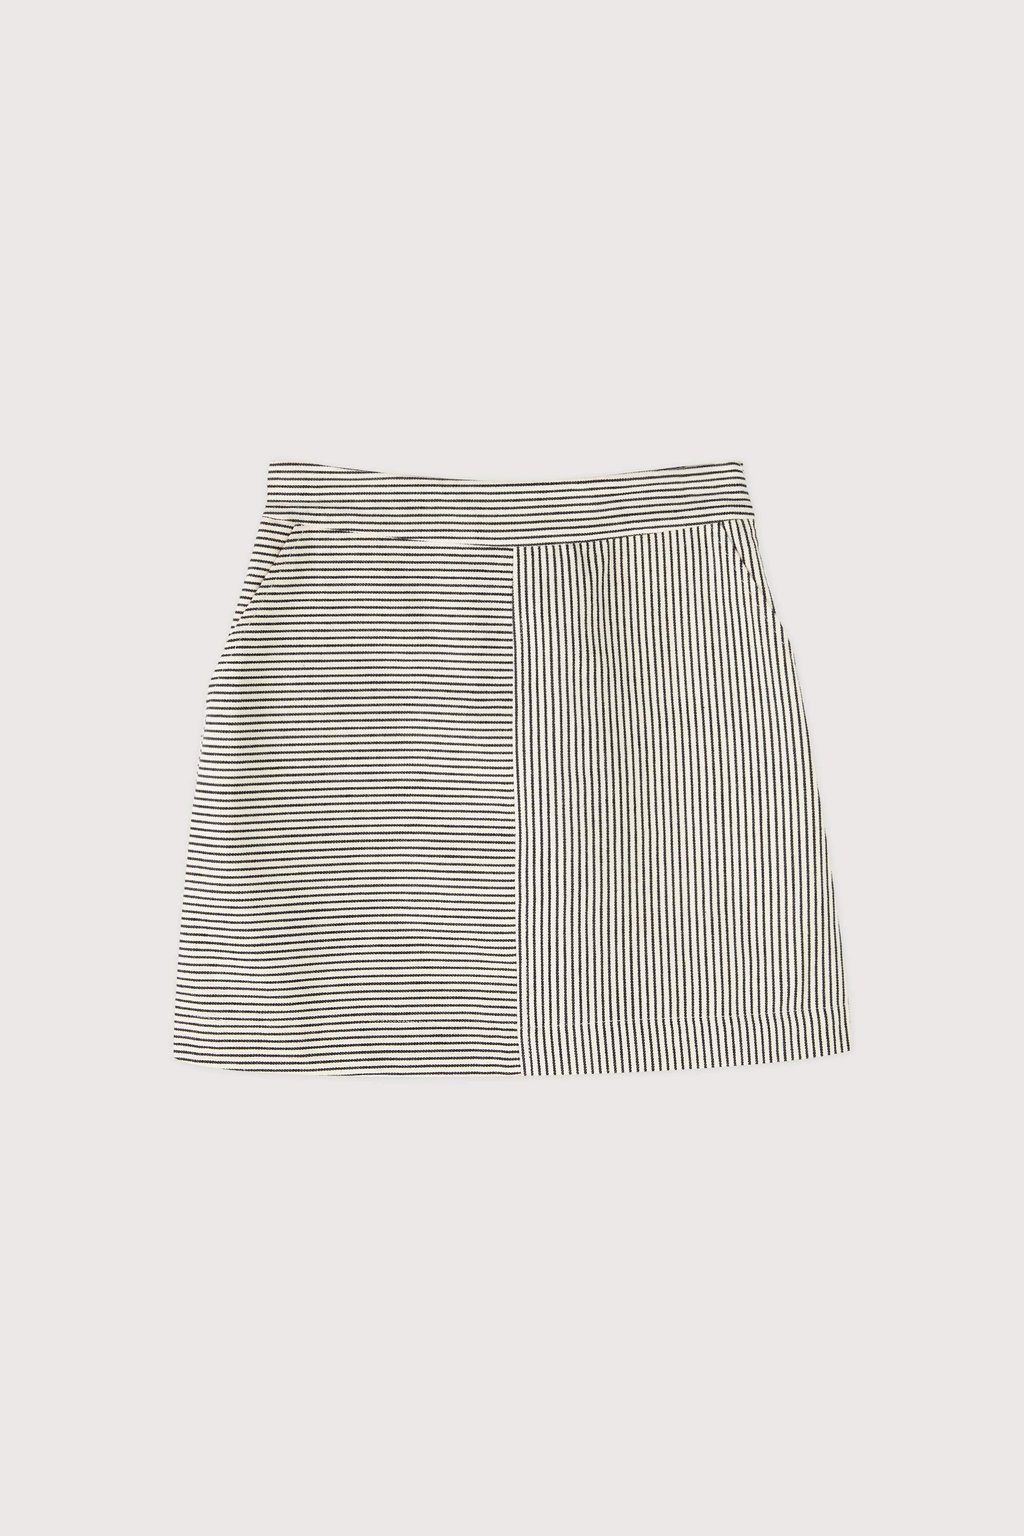 Skirt 3433 White Black Stripe 5